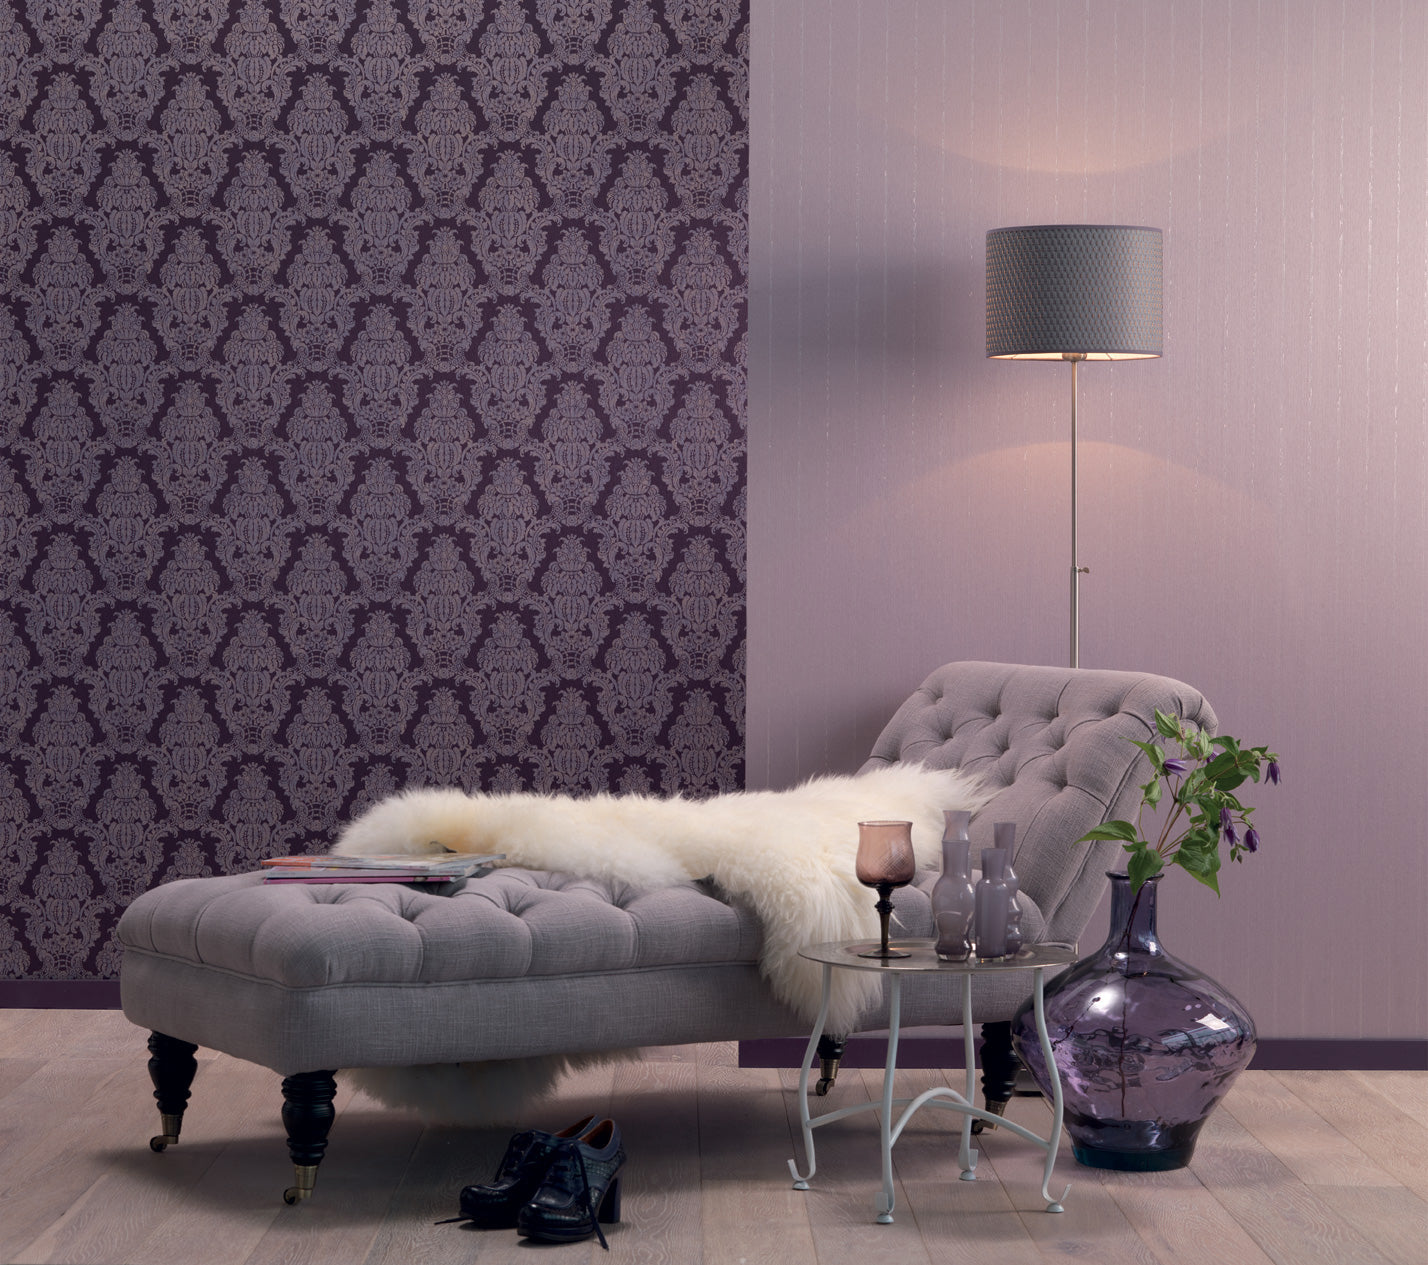 The choice of wallpaper for the living room, photo